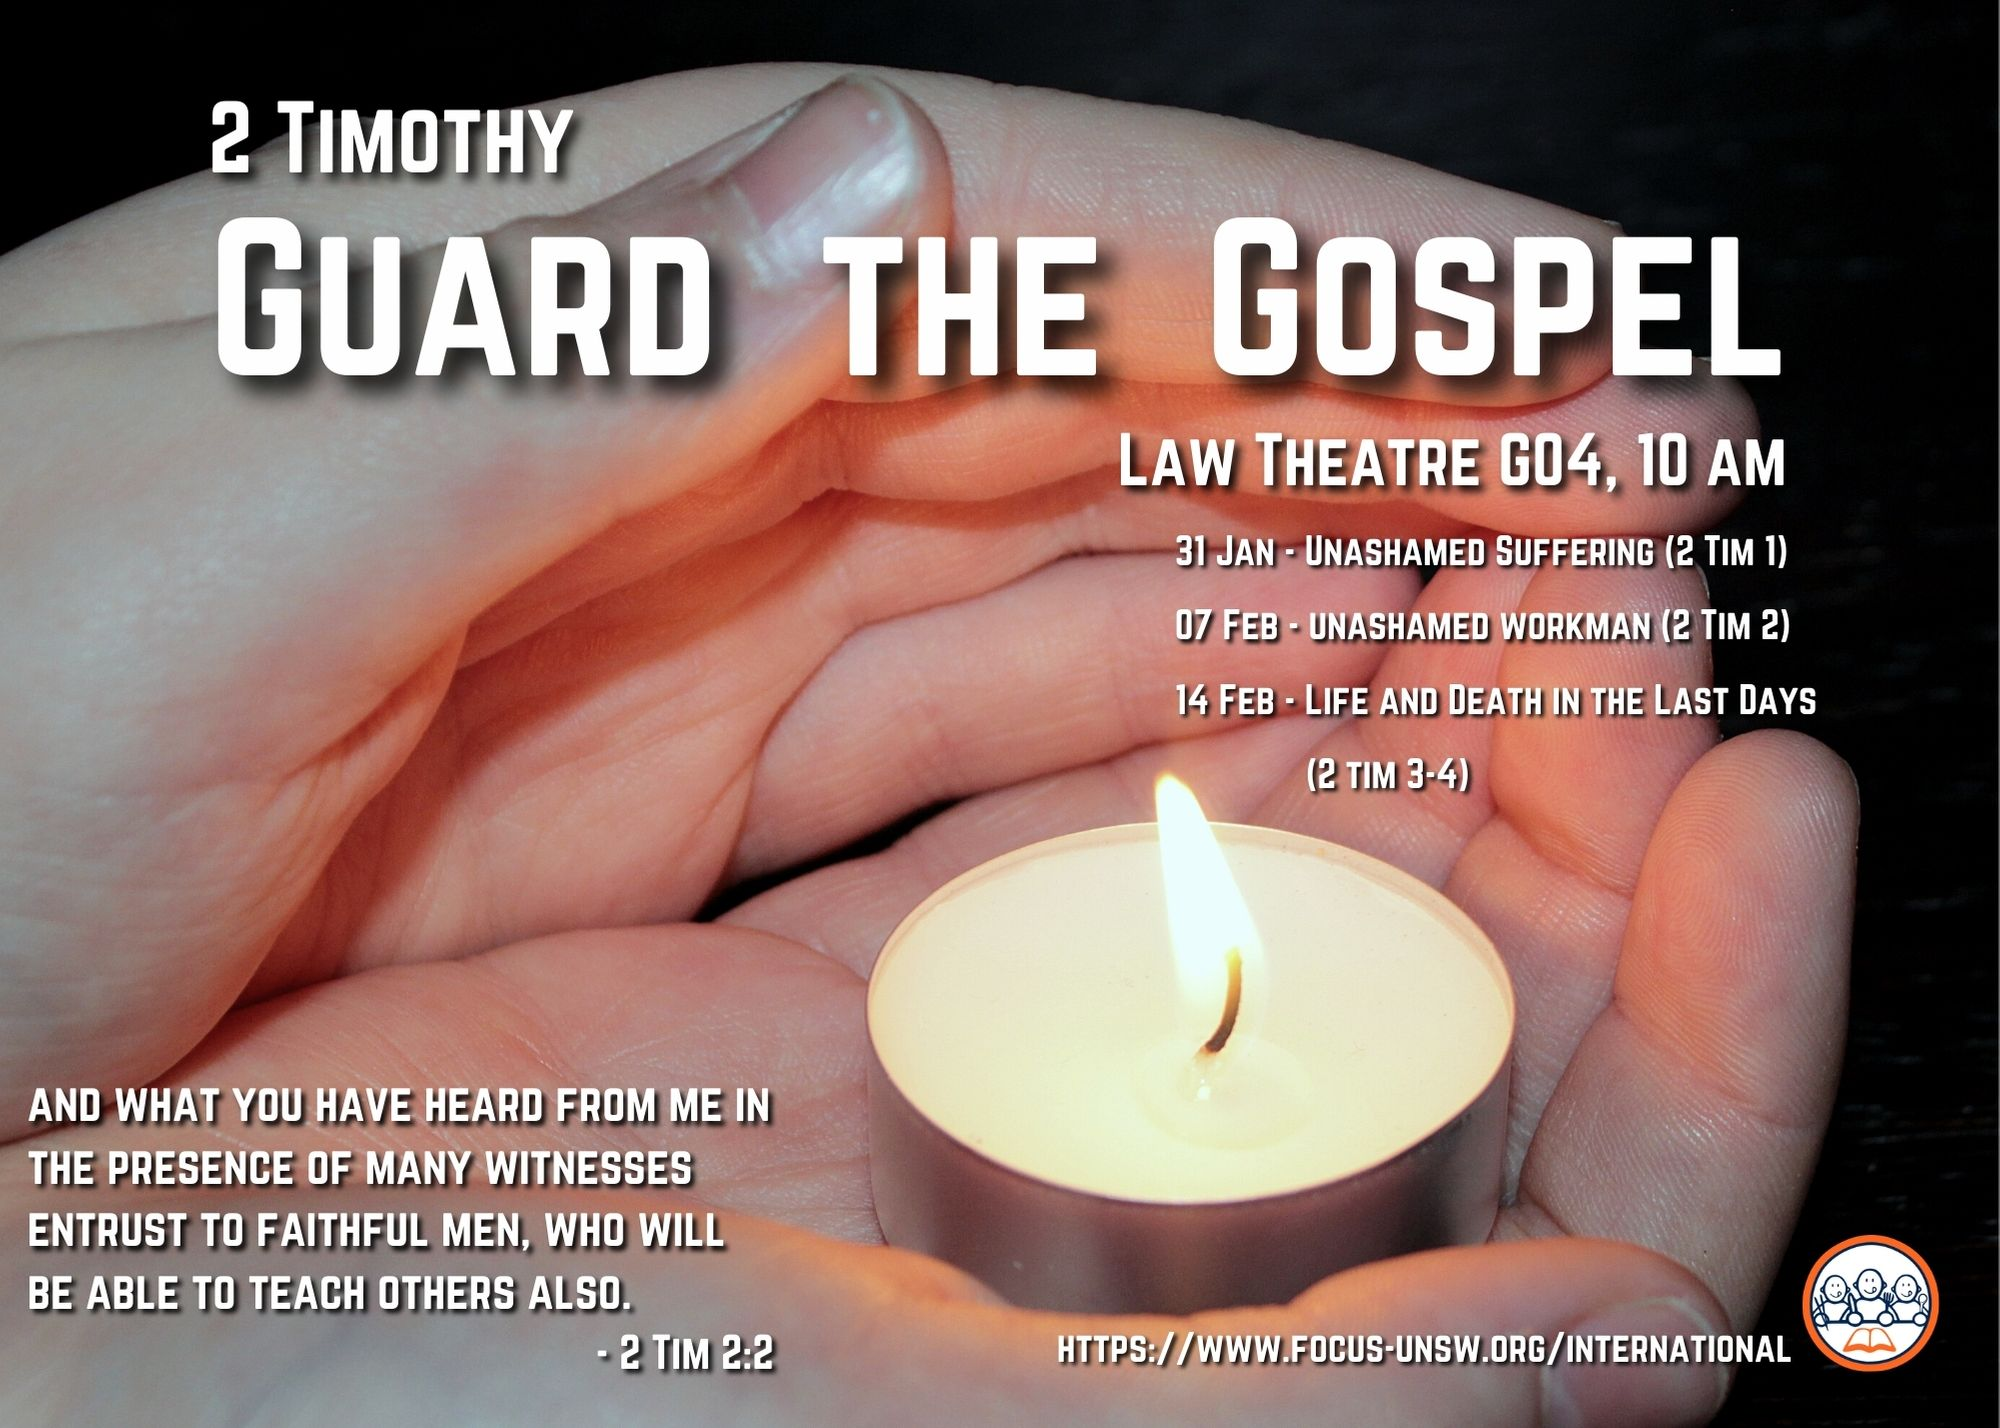 Guard the Gospel